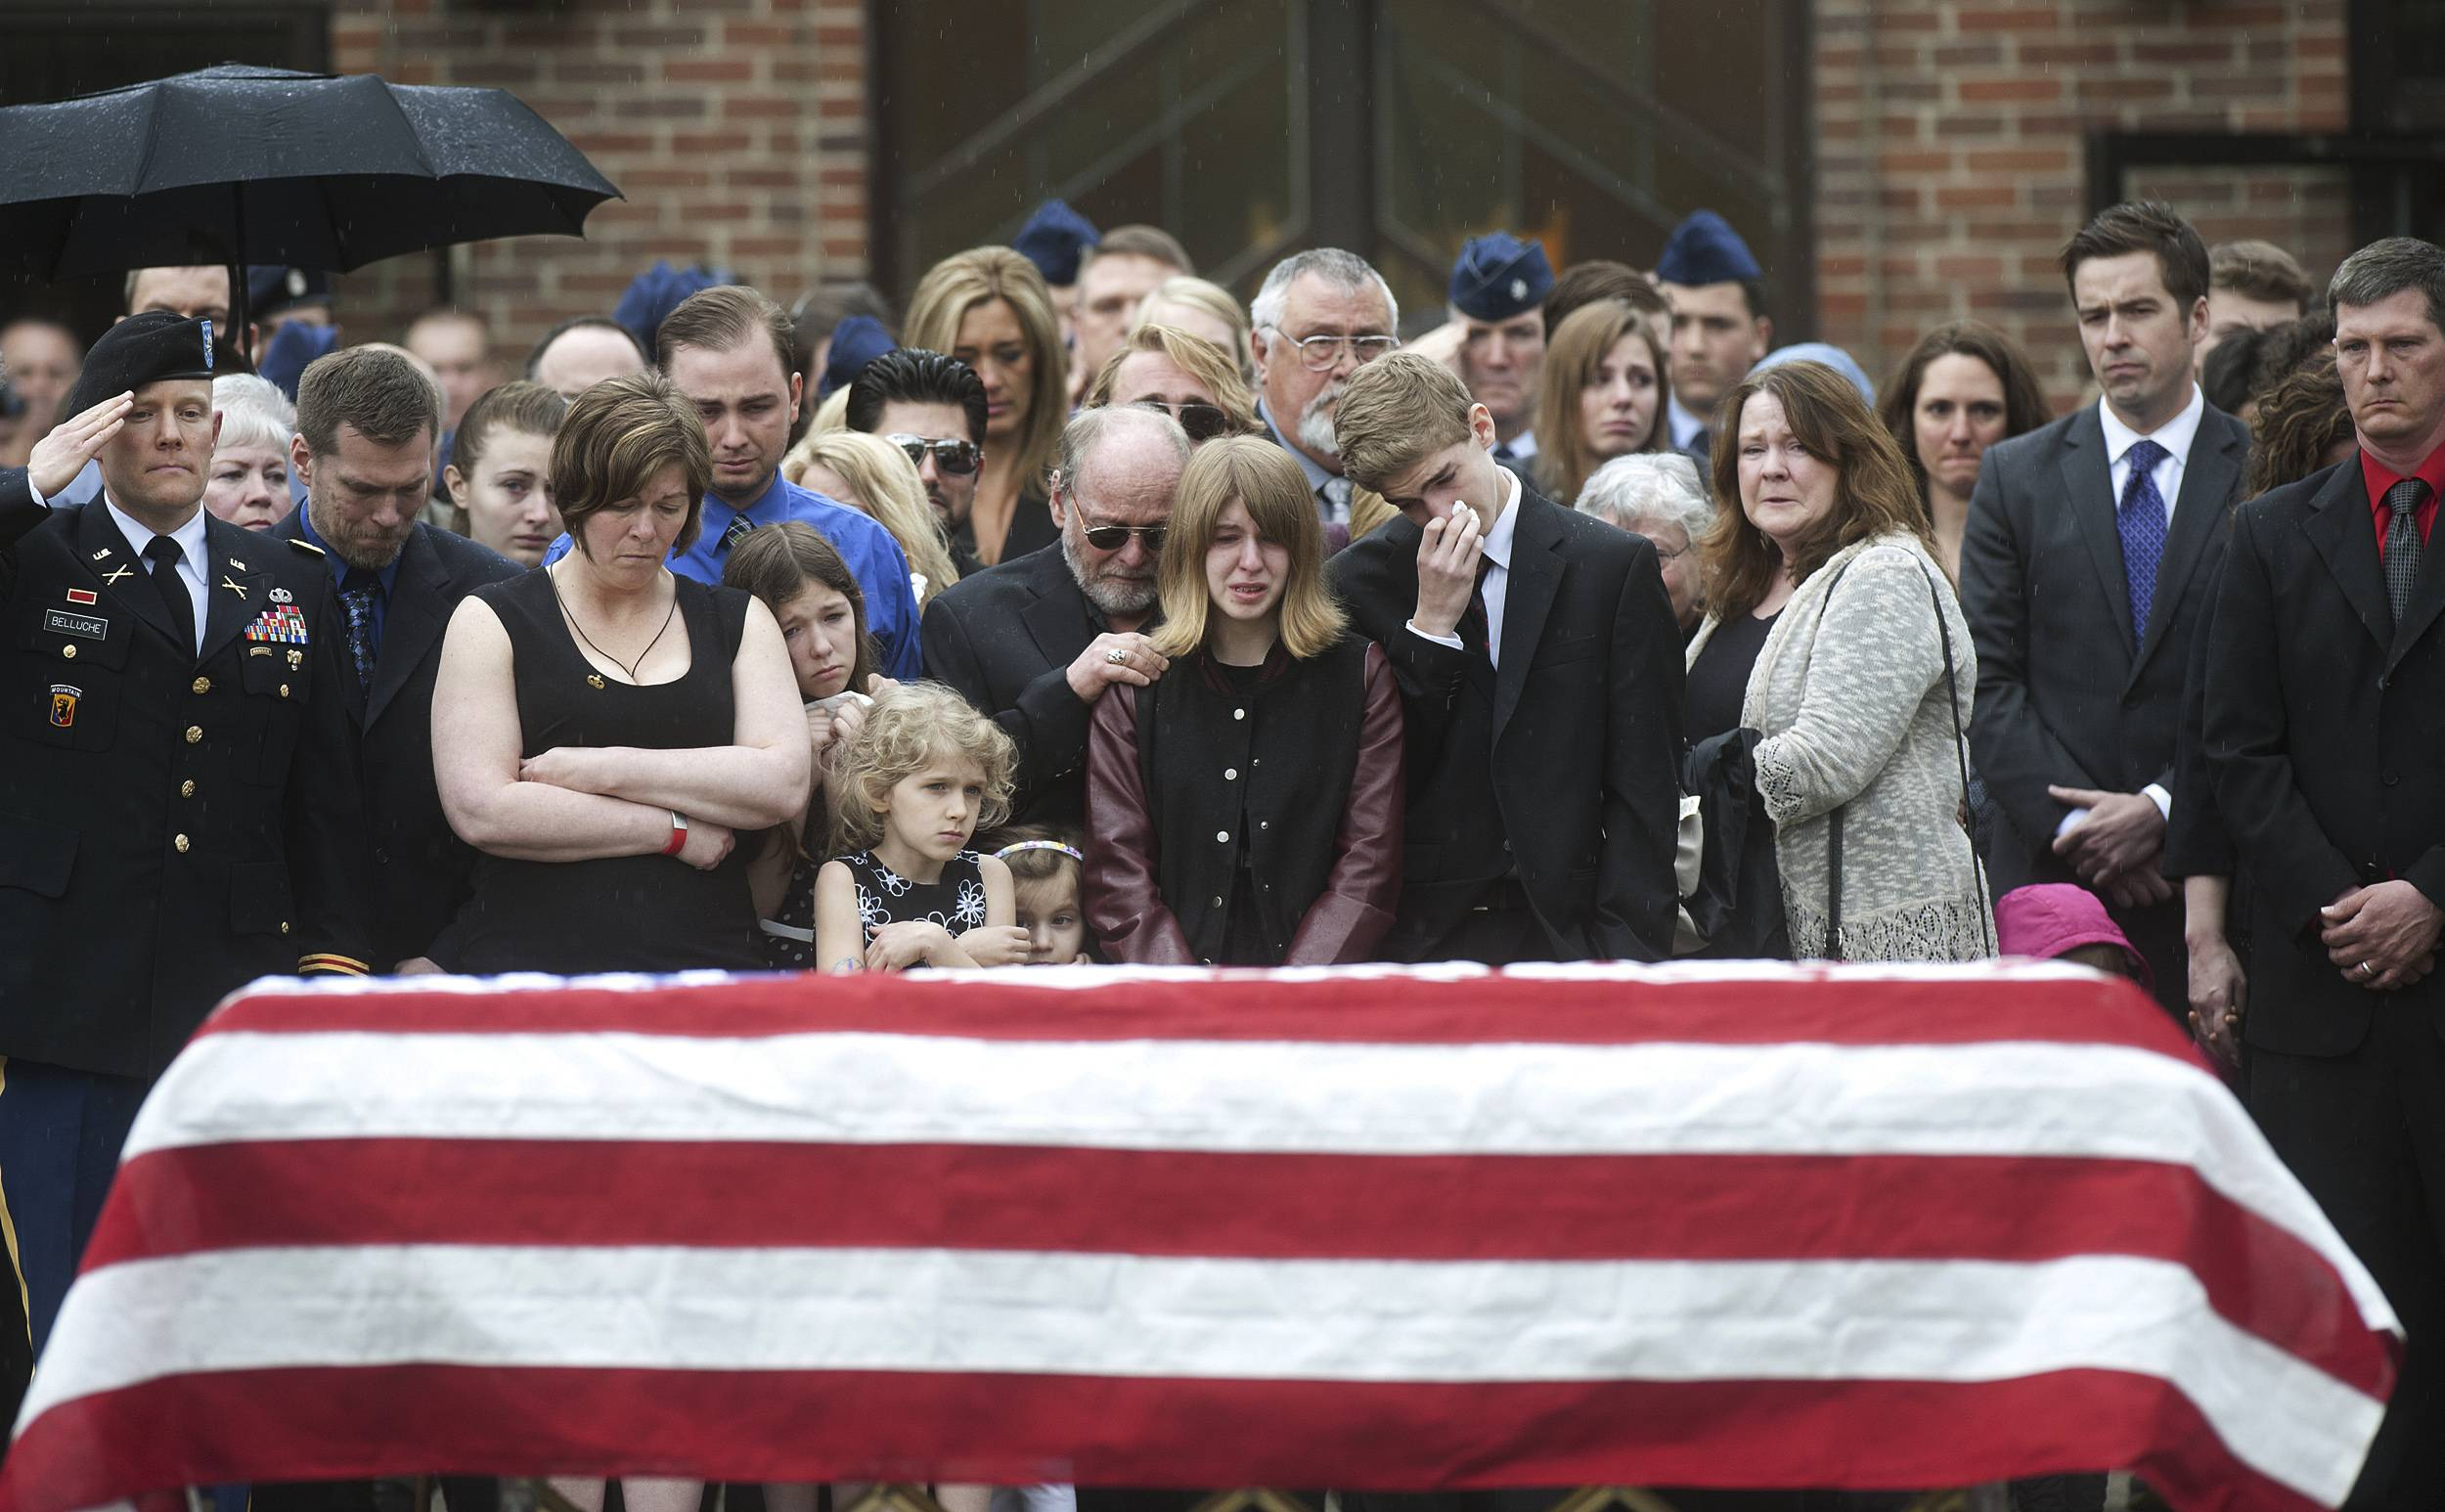 Family, friends and members of the military gather beside Kryn Miner's casket after his funeral. His widow, Amy Miner, third from left, believes the Veterans Affairs health system must do more to help veterans who struggle with PTSD after returning home.